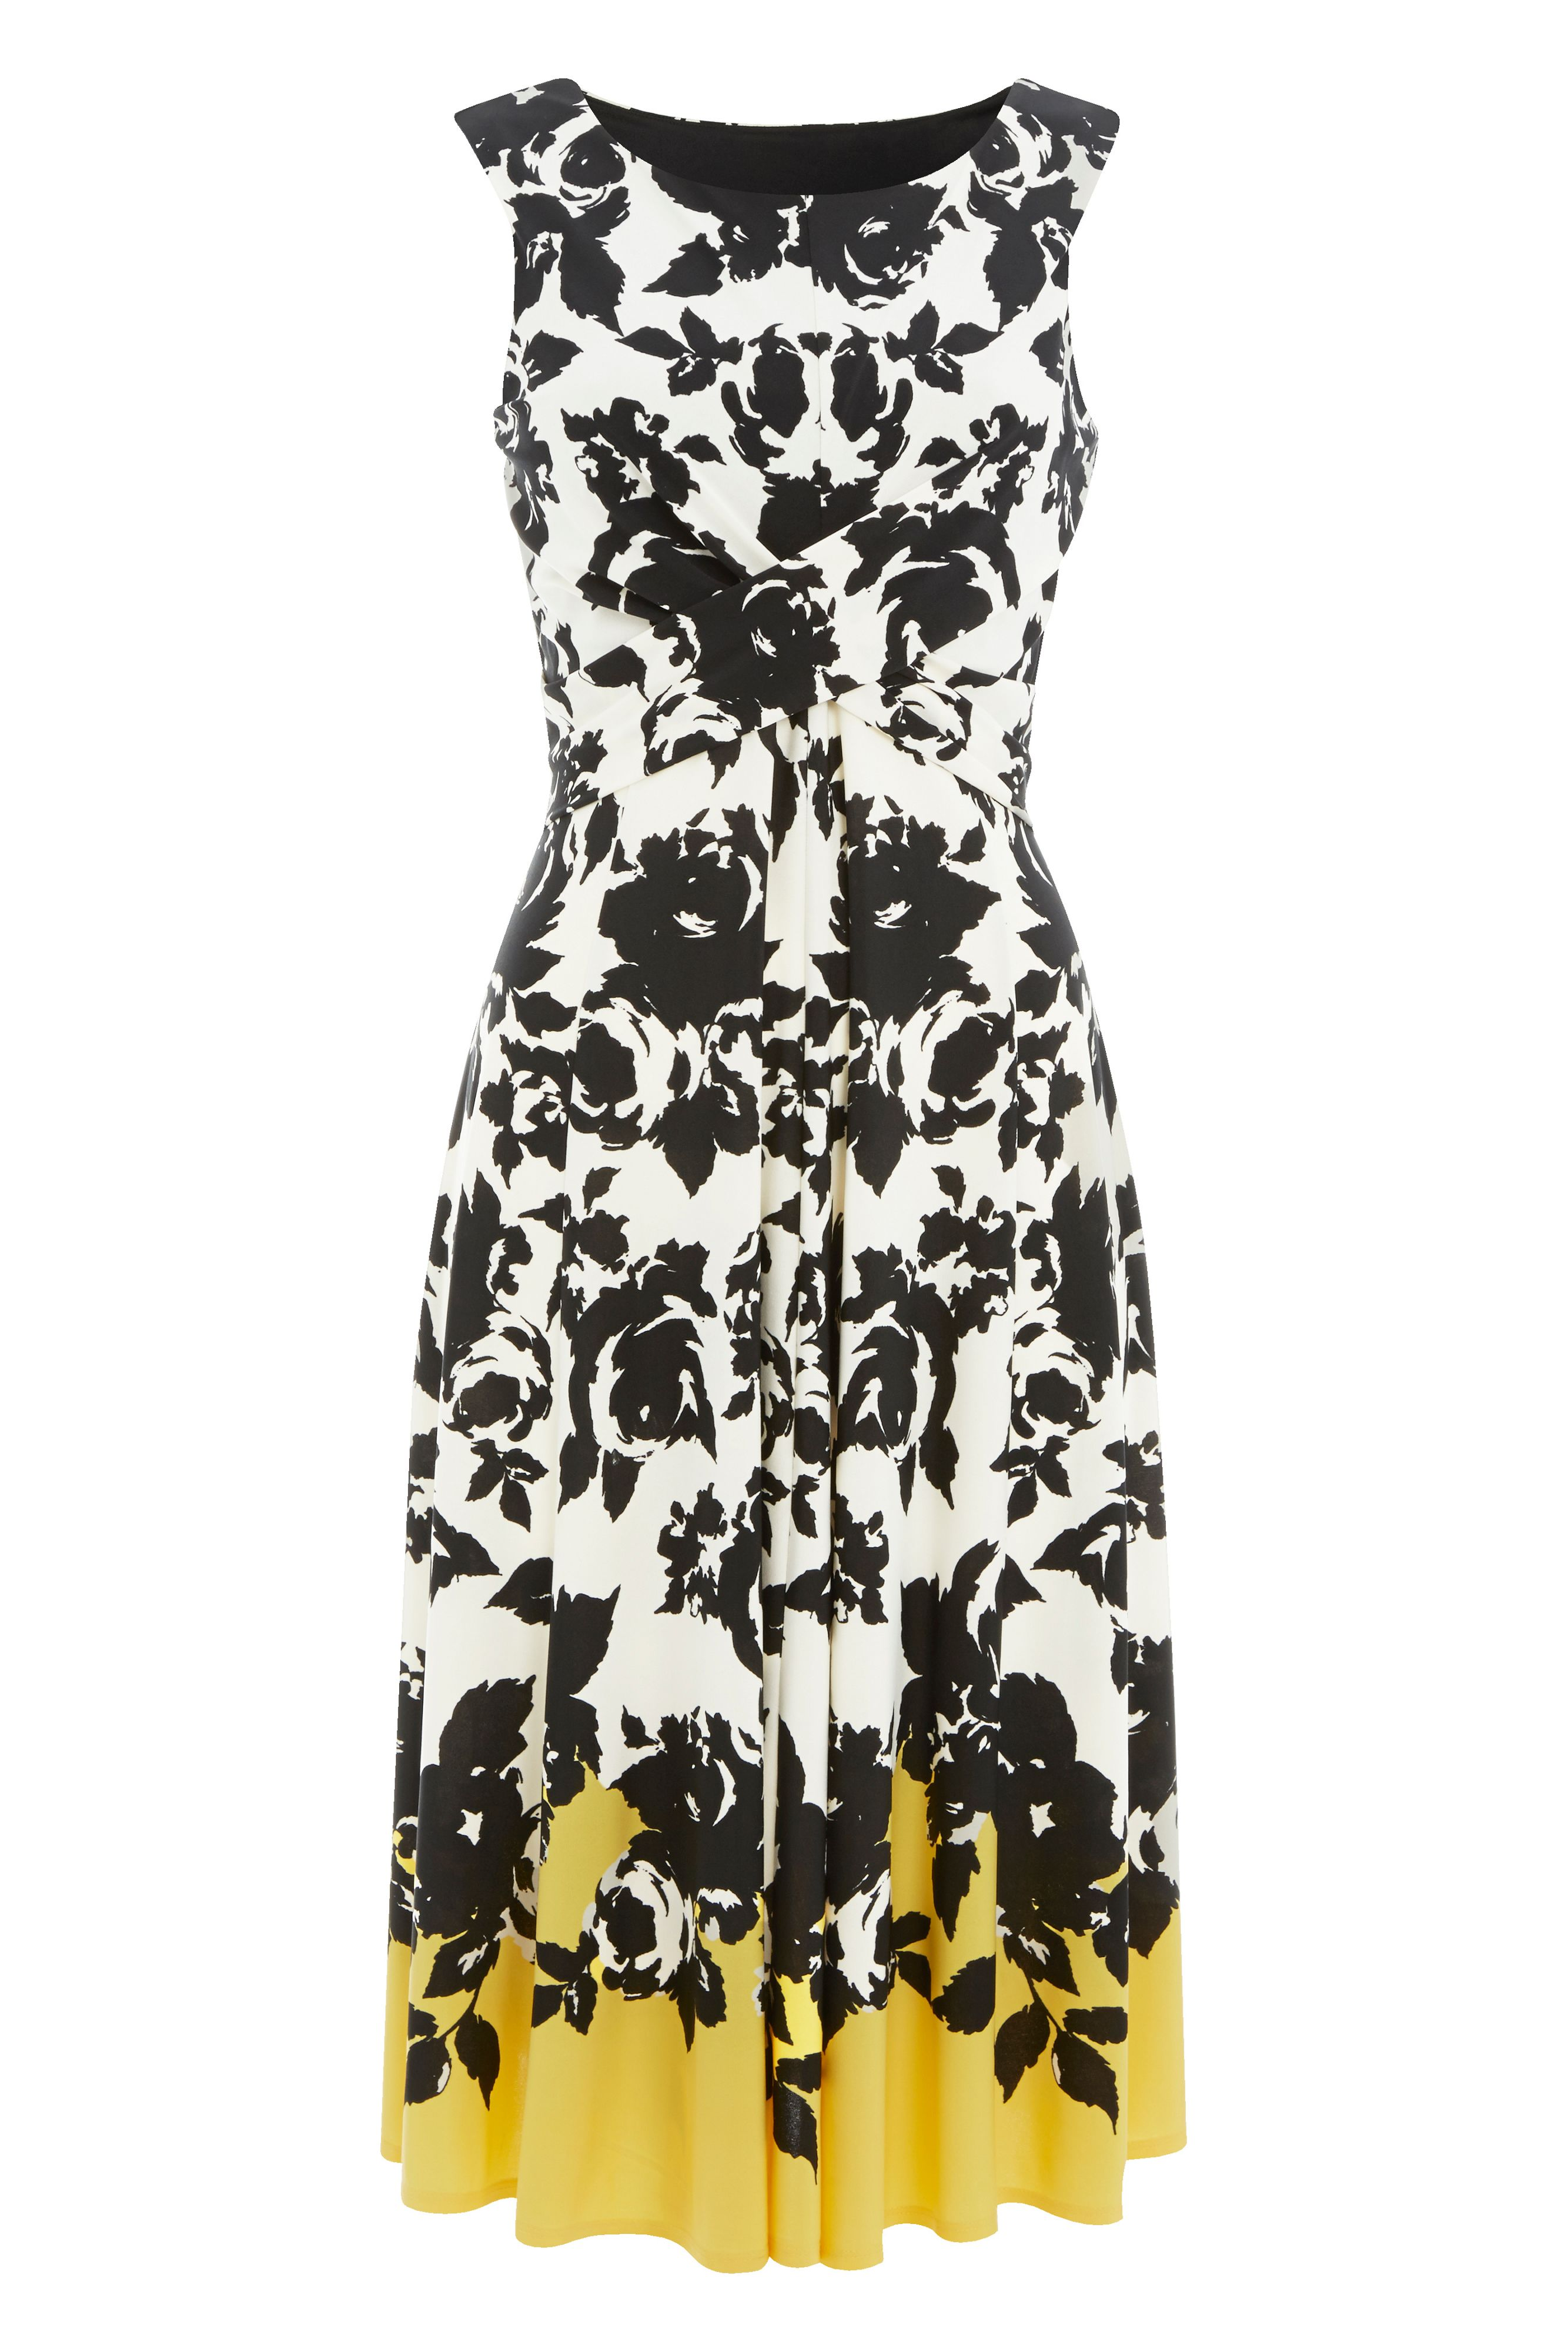 Roman Originals Fit and Flare Contrast Floral Dress, Yellow